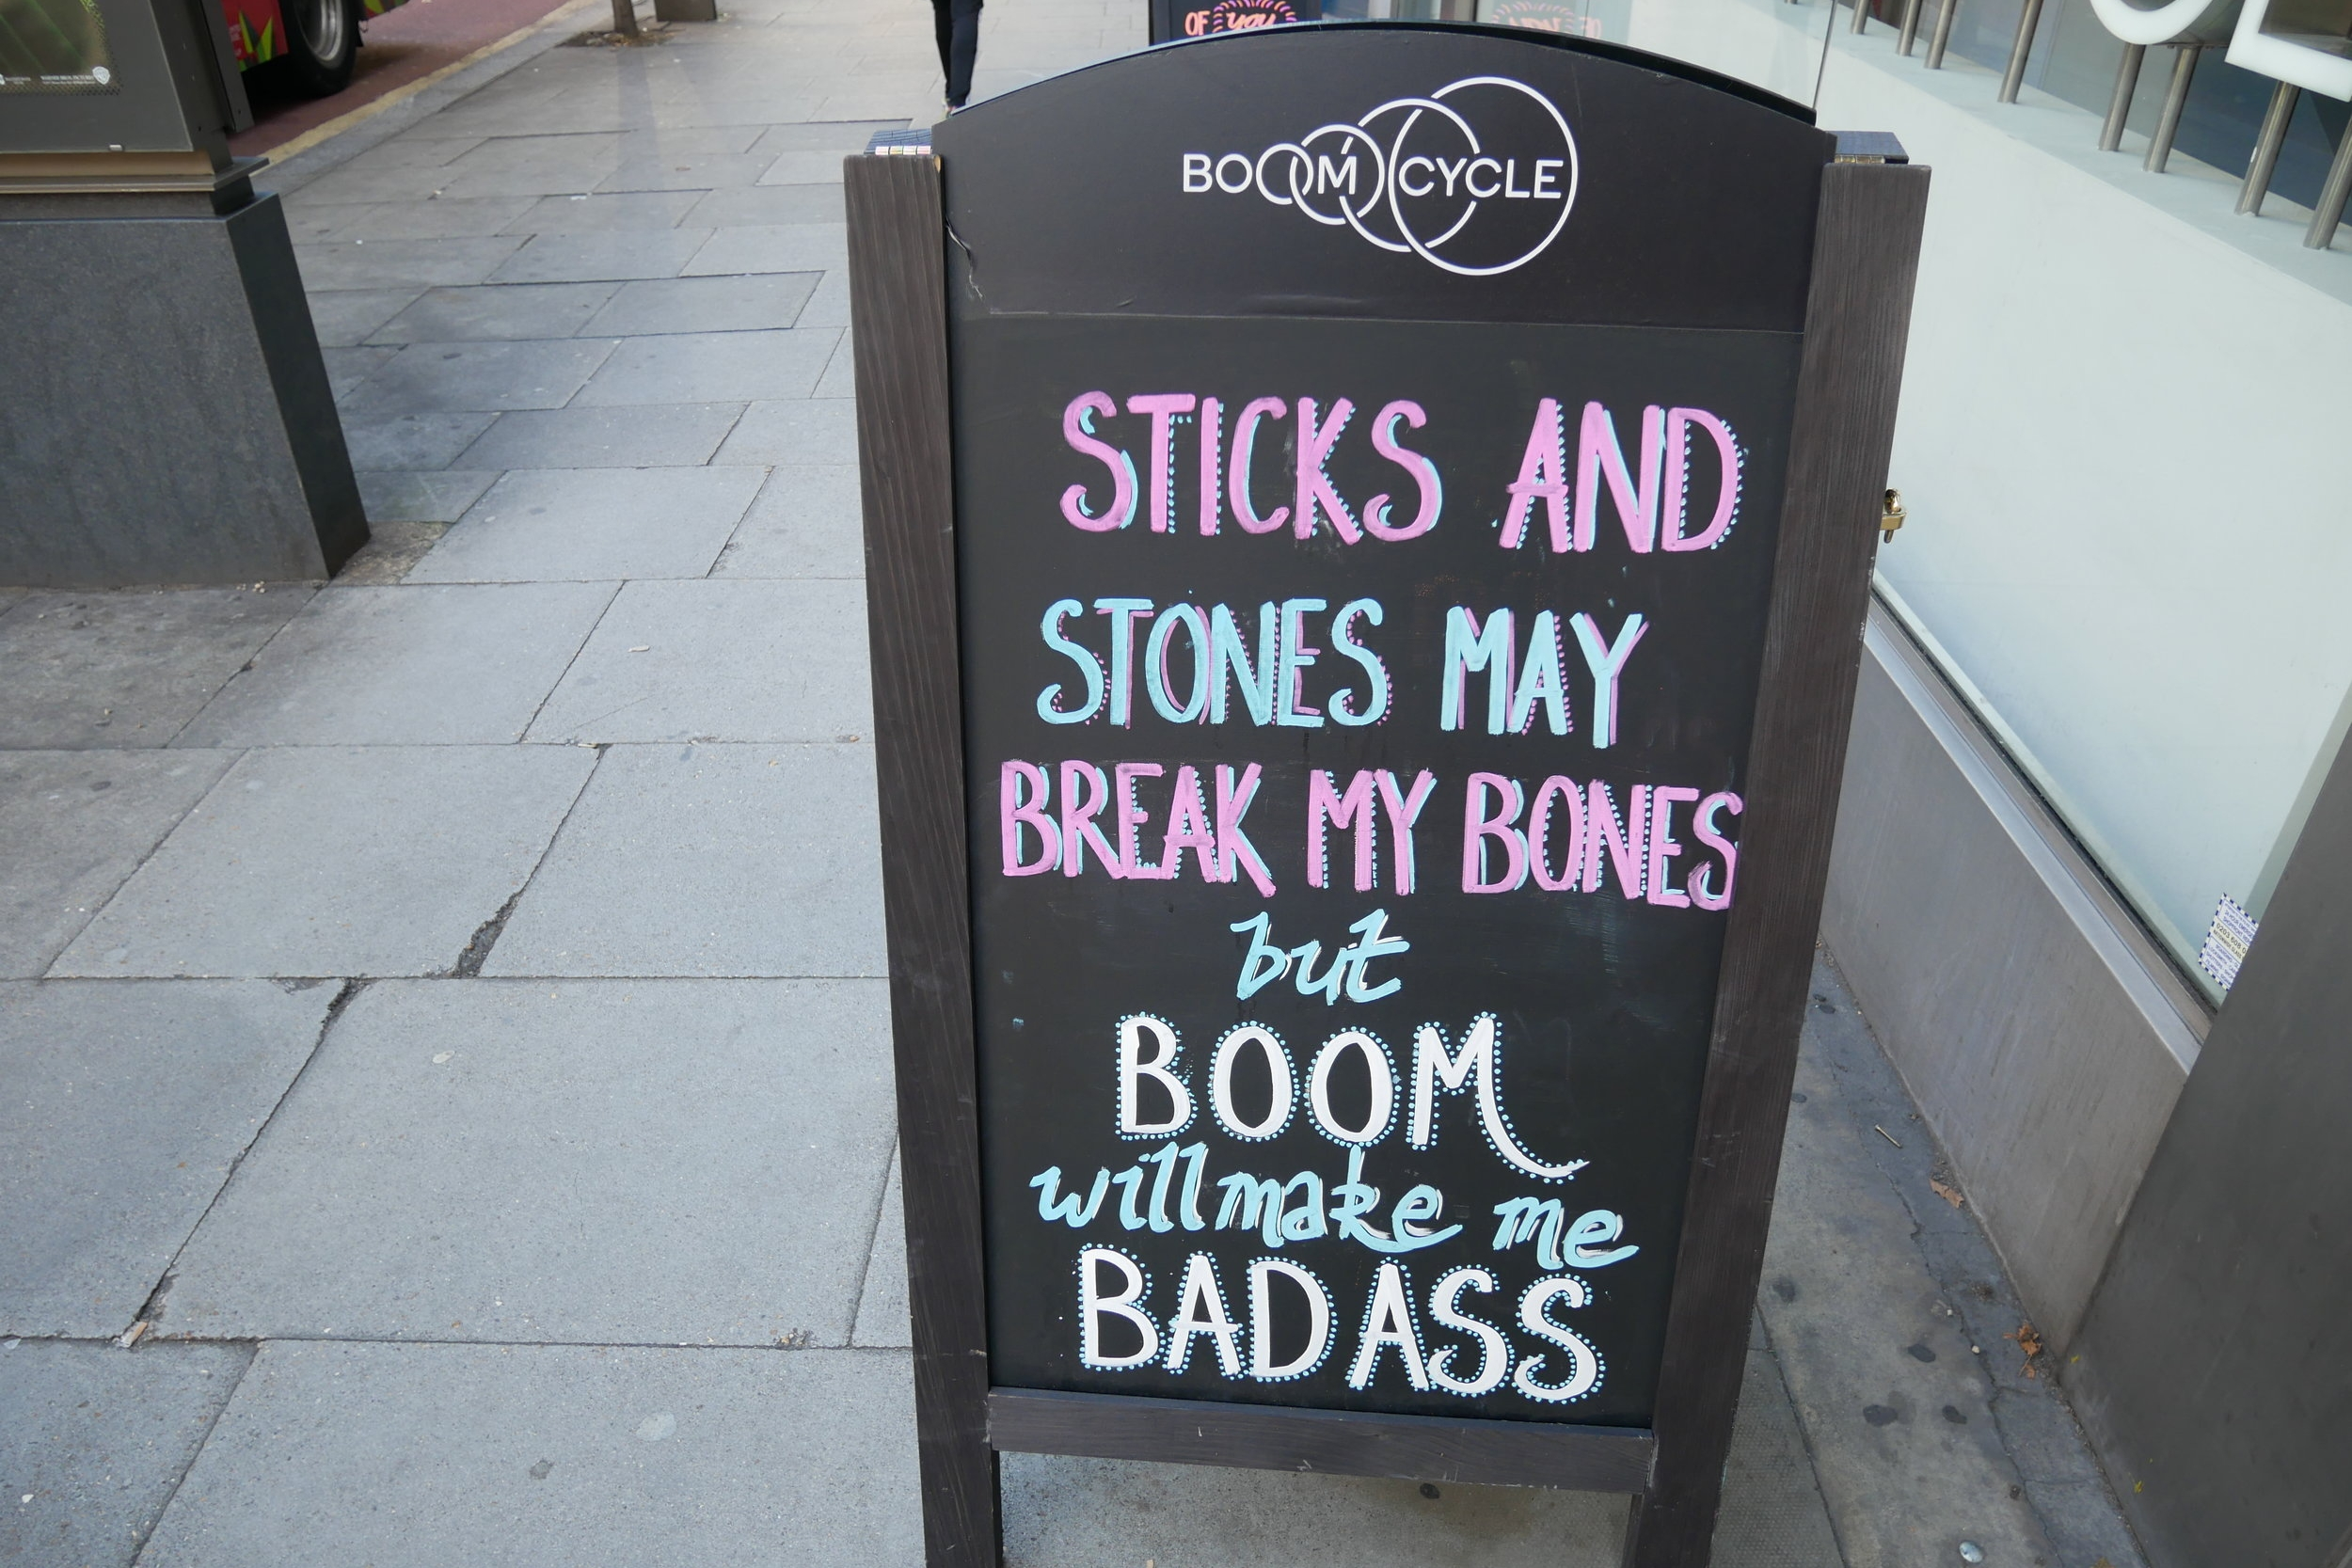 I always love the cheeky Boom Cycle signs